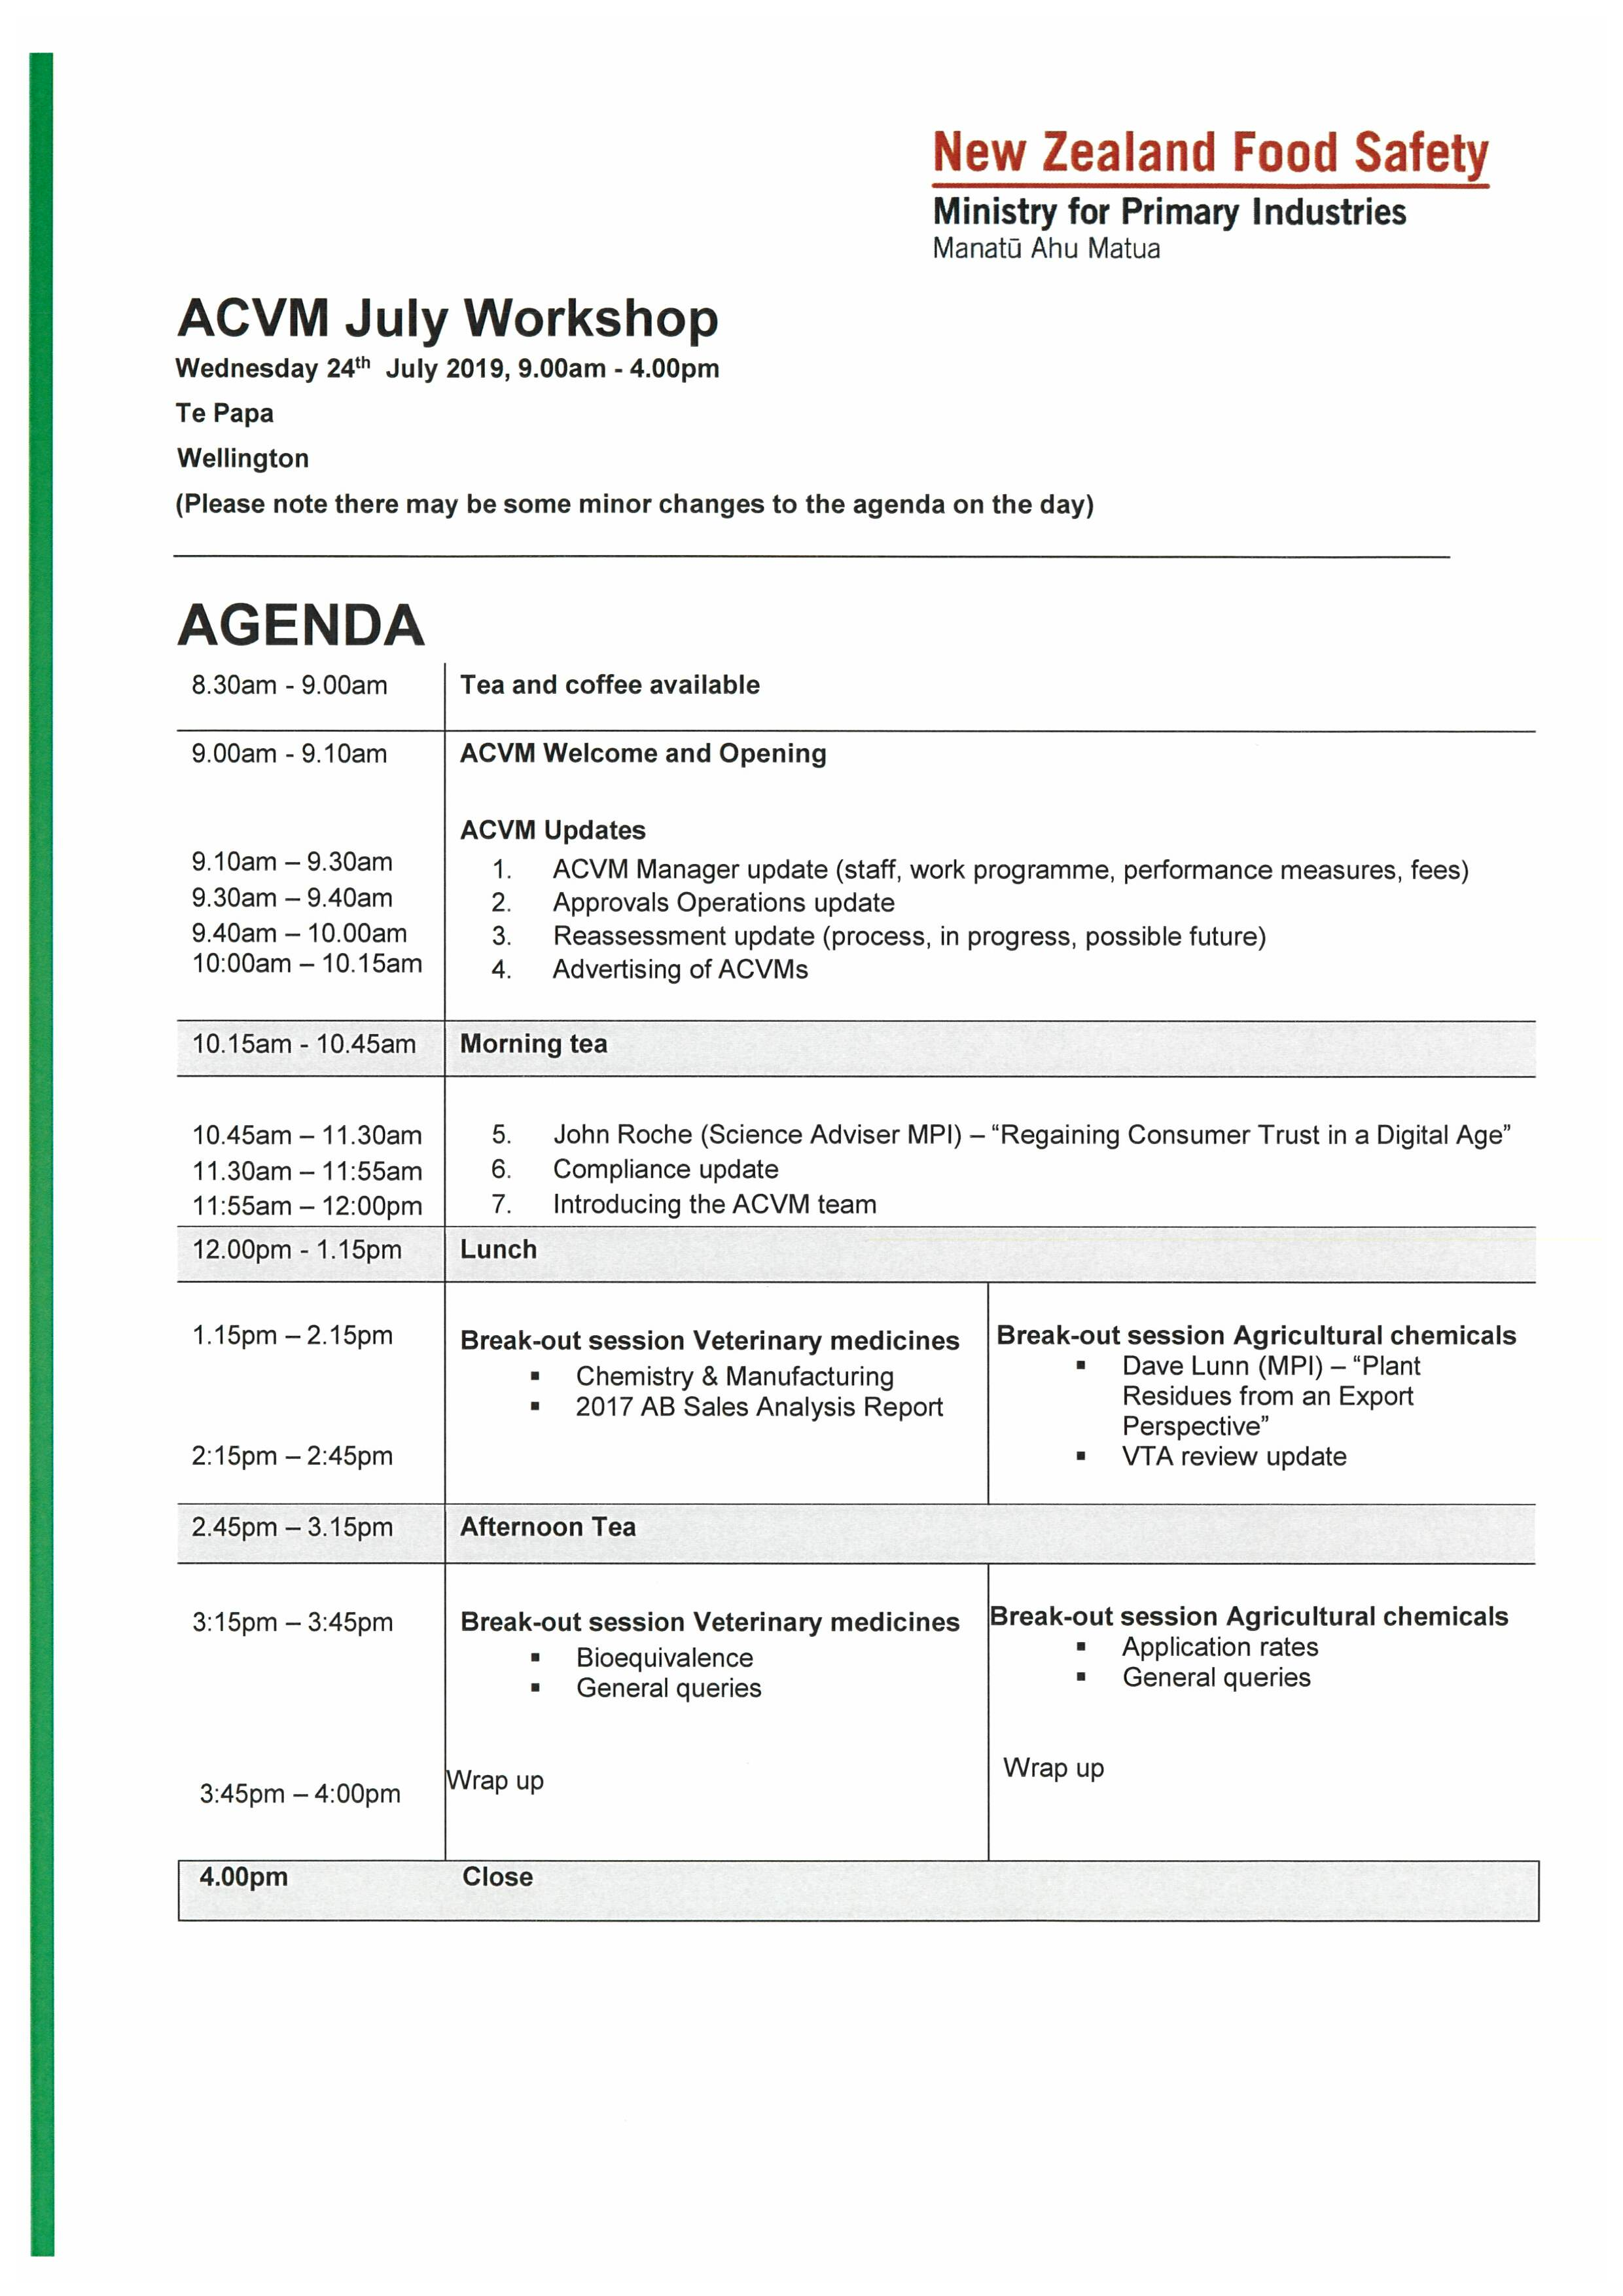 ACVM Workshop Agenda 24 July 2019